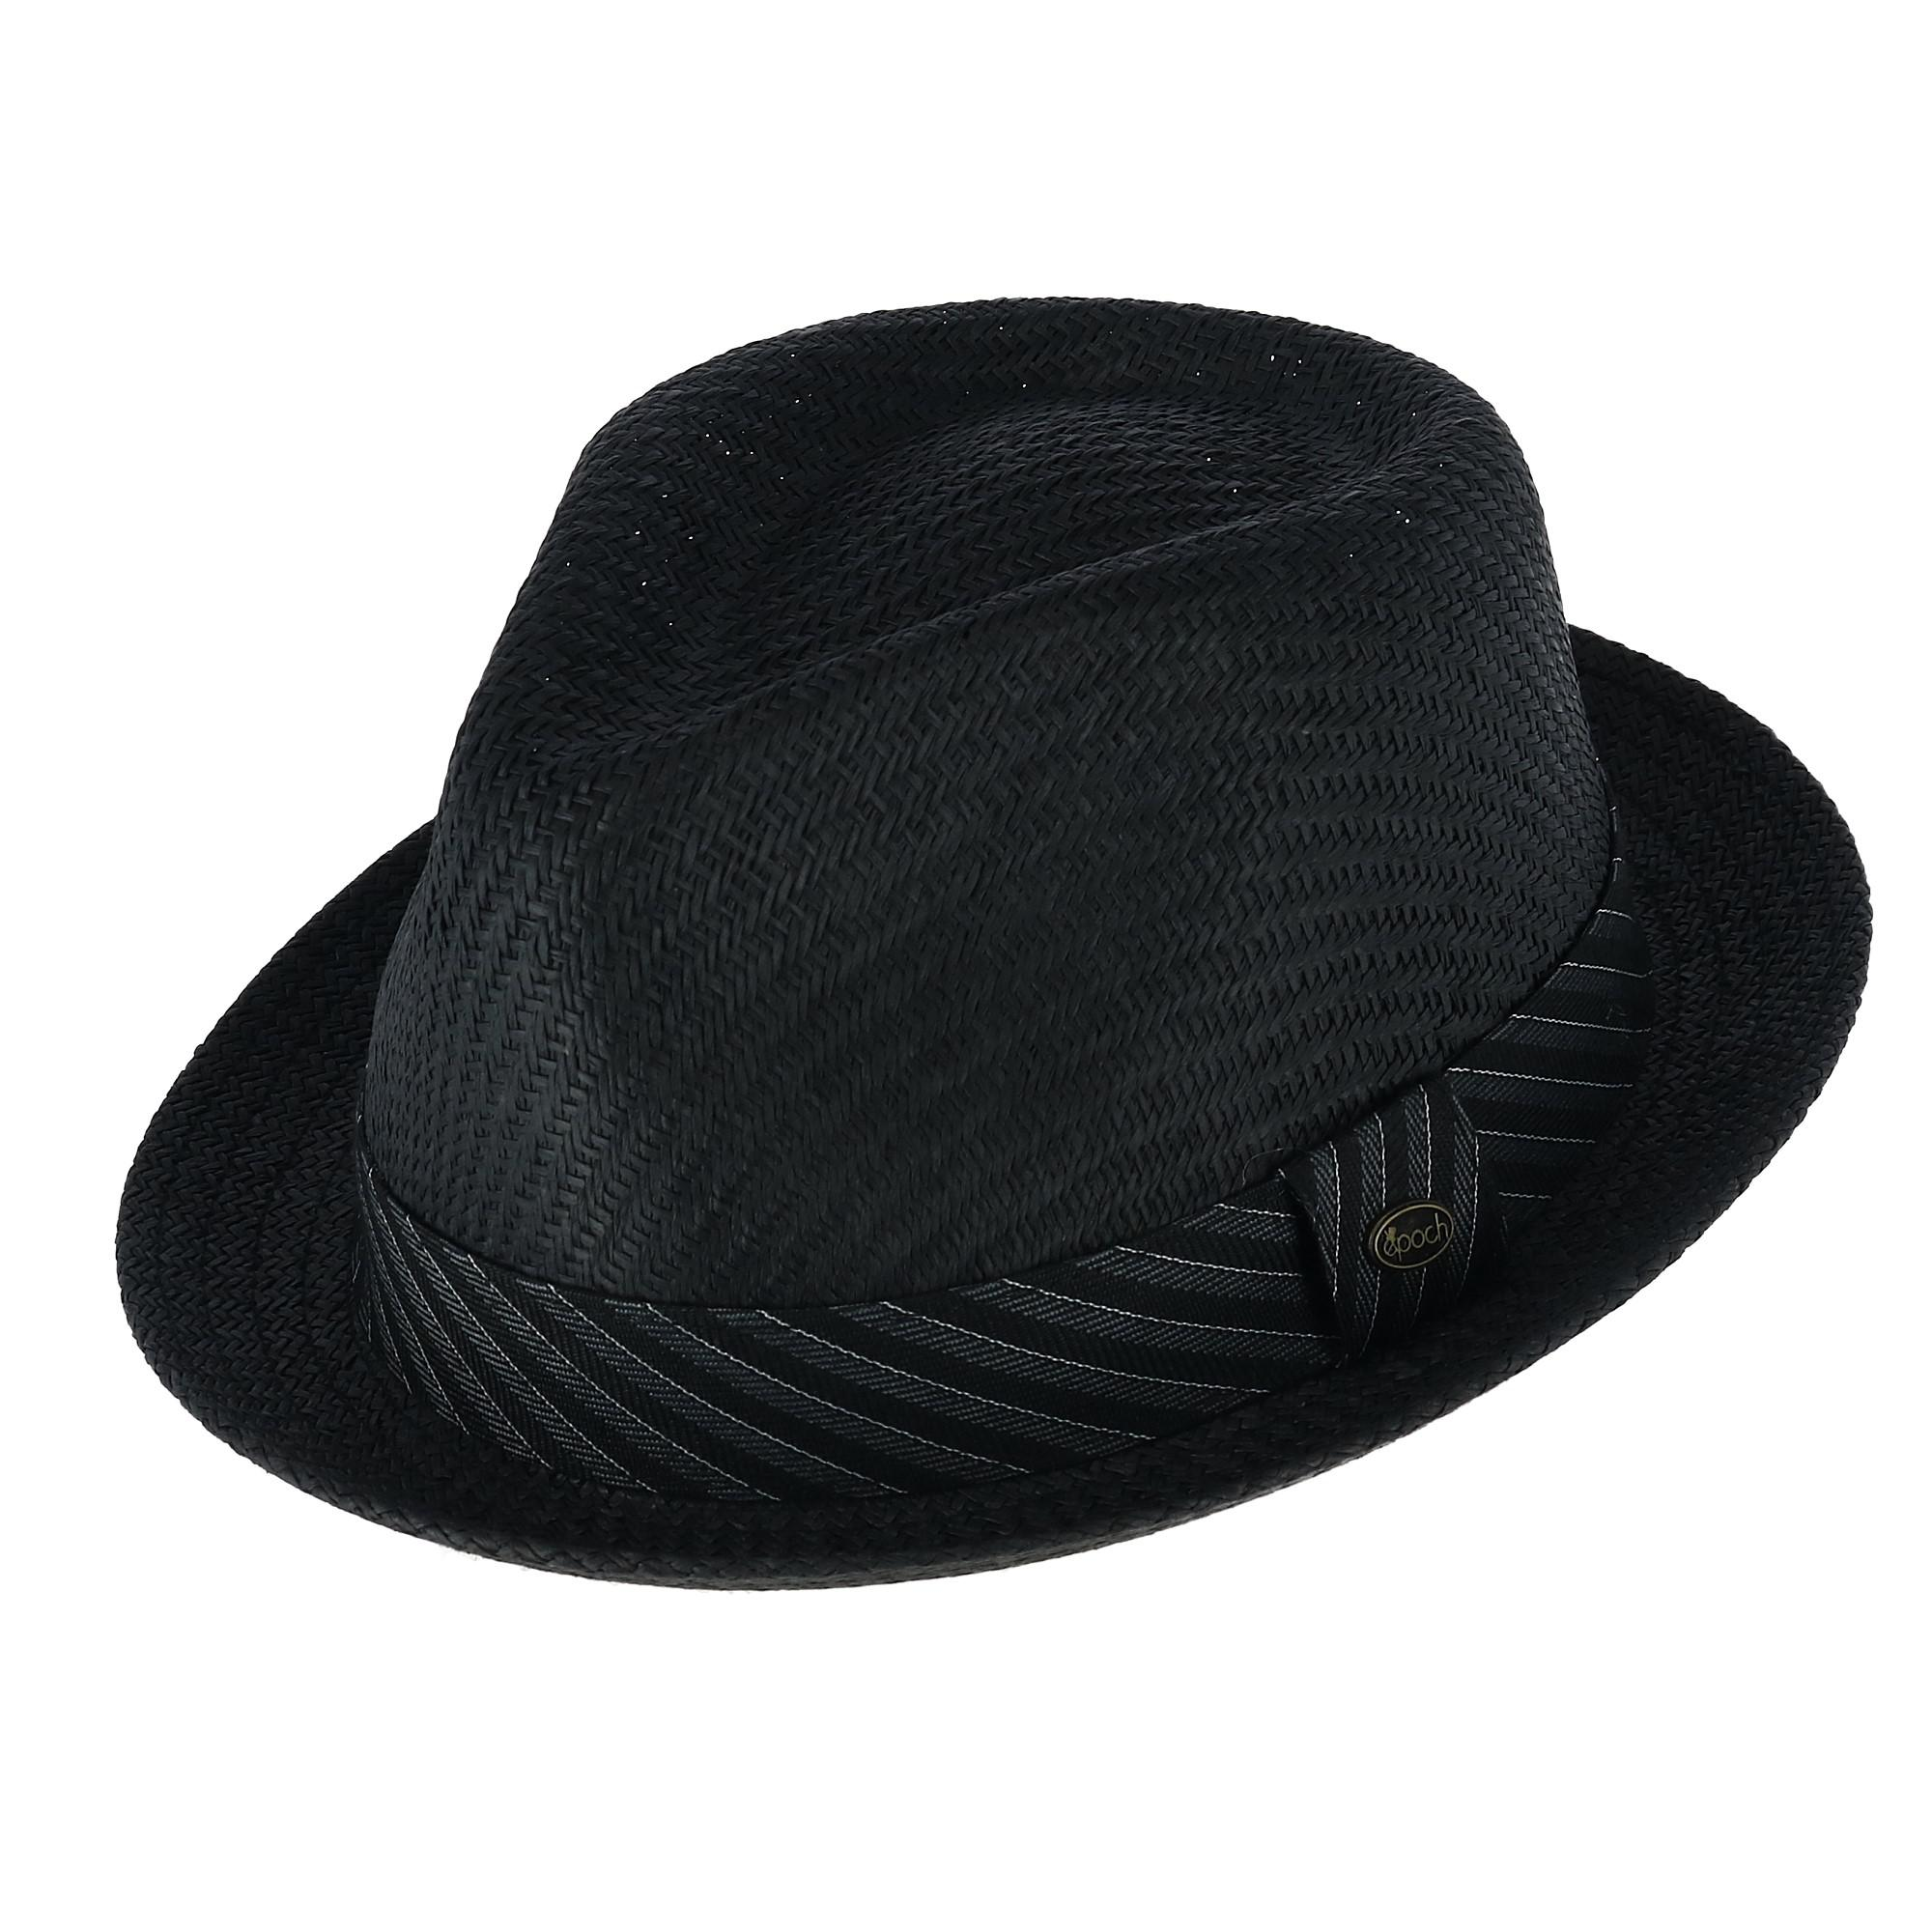 5868598929591a New Epoch Hats Company Men's Small Brim Fedora with Striped Fabric ...